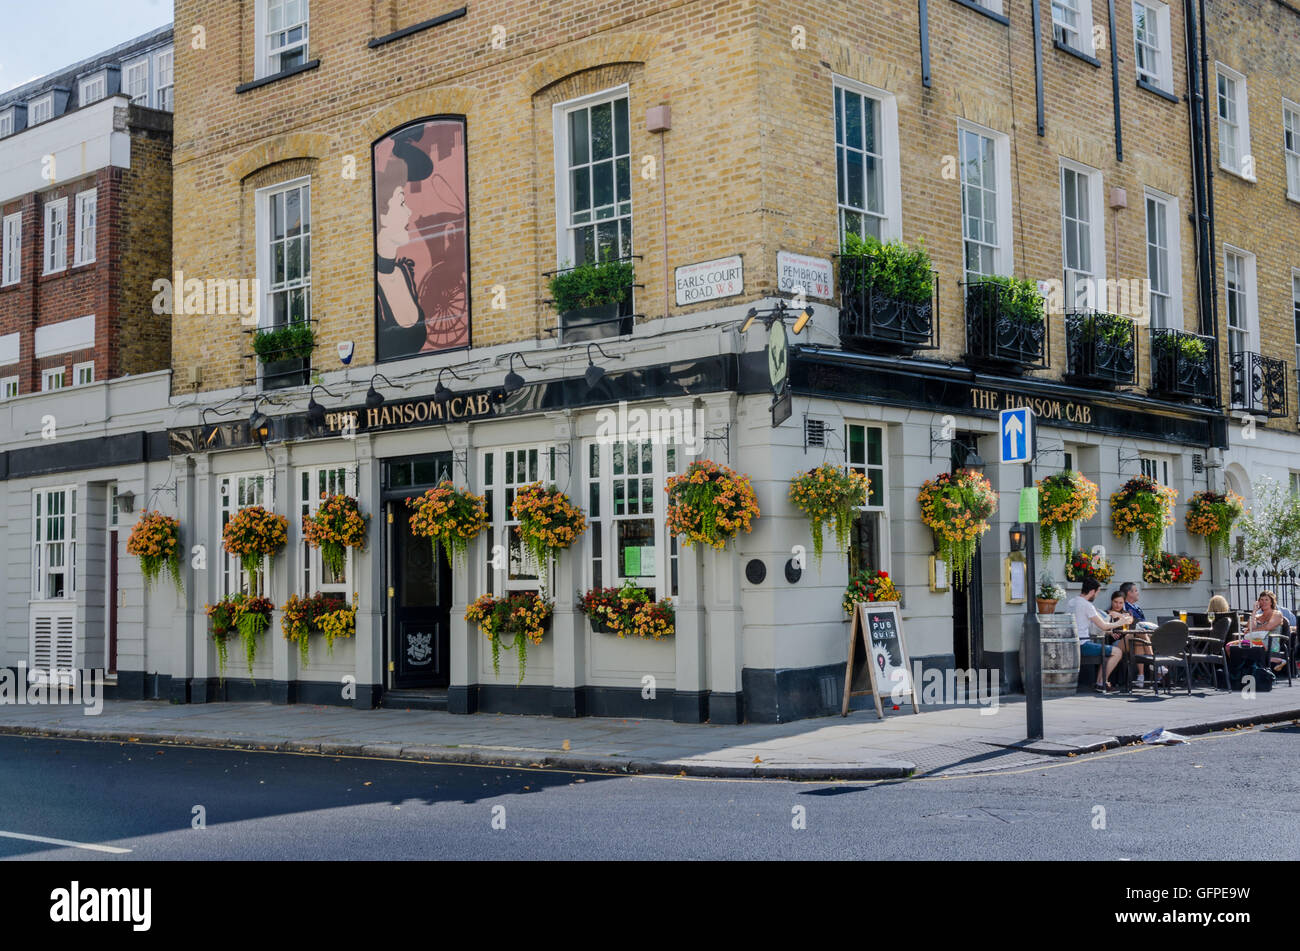 the hansom cab pub in earl 39 s court london stock photo. Black Bedroom Furniture Sets. Home Design Ideas